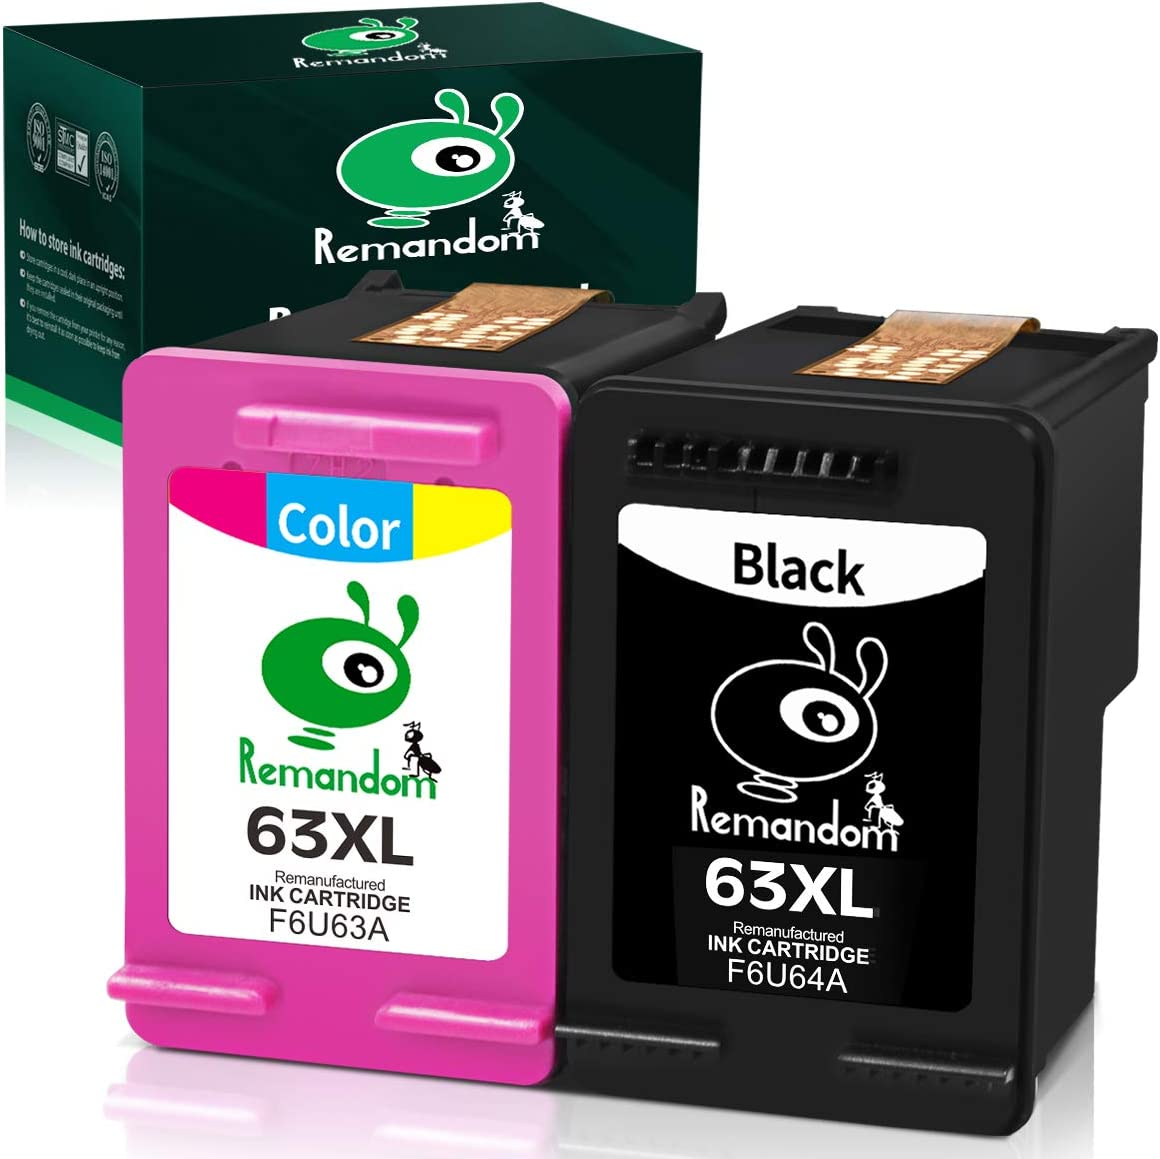 Remandom Remanufactured Ink Cartridge 63 Replacement for HP 63XL Used in HP Officejet 3830 5255 4650 3831 4655 HP Envy 4520 4516 Deskjet 2130 2132 1112 3630 3633 3634 Printer (1 Black+1 Tri-Color)